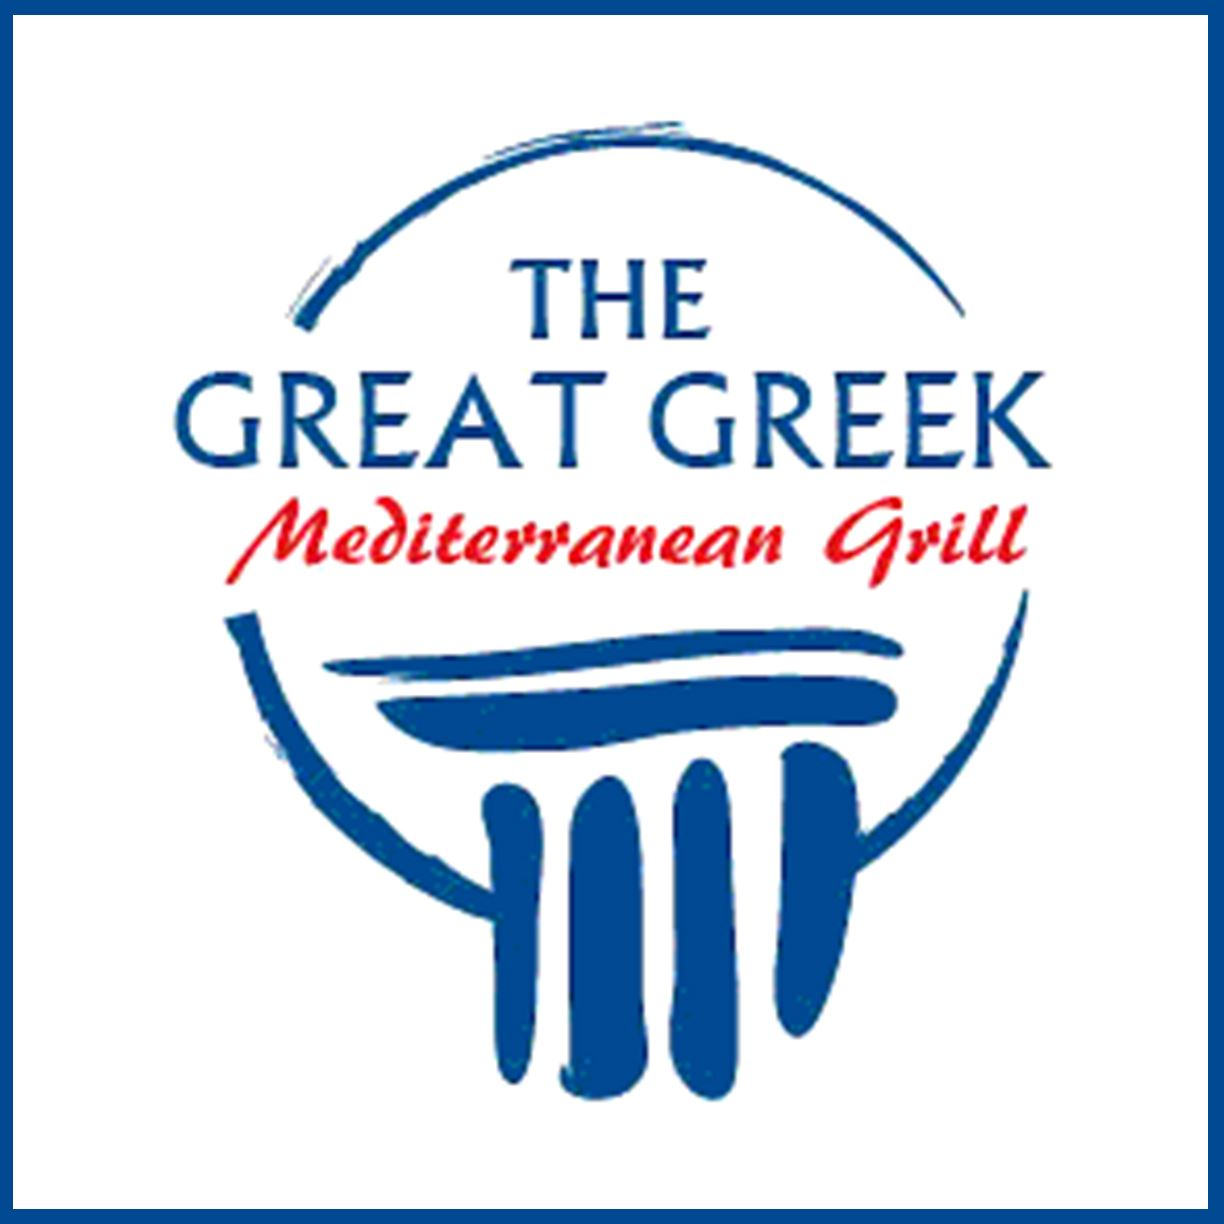 The Great Greek Mediterranaen Grill Logo - Website Coupon Icon